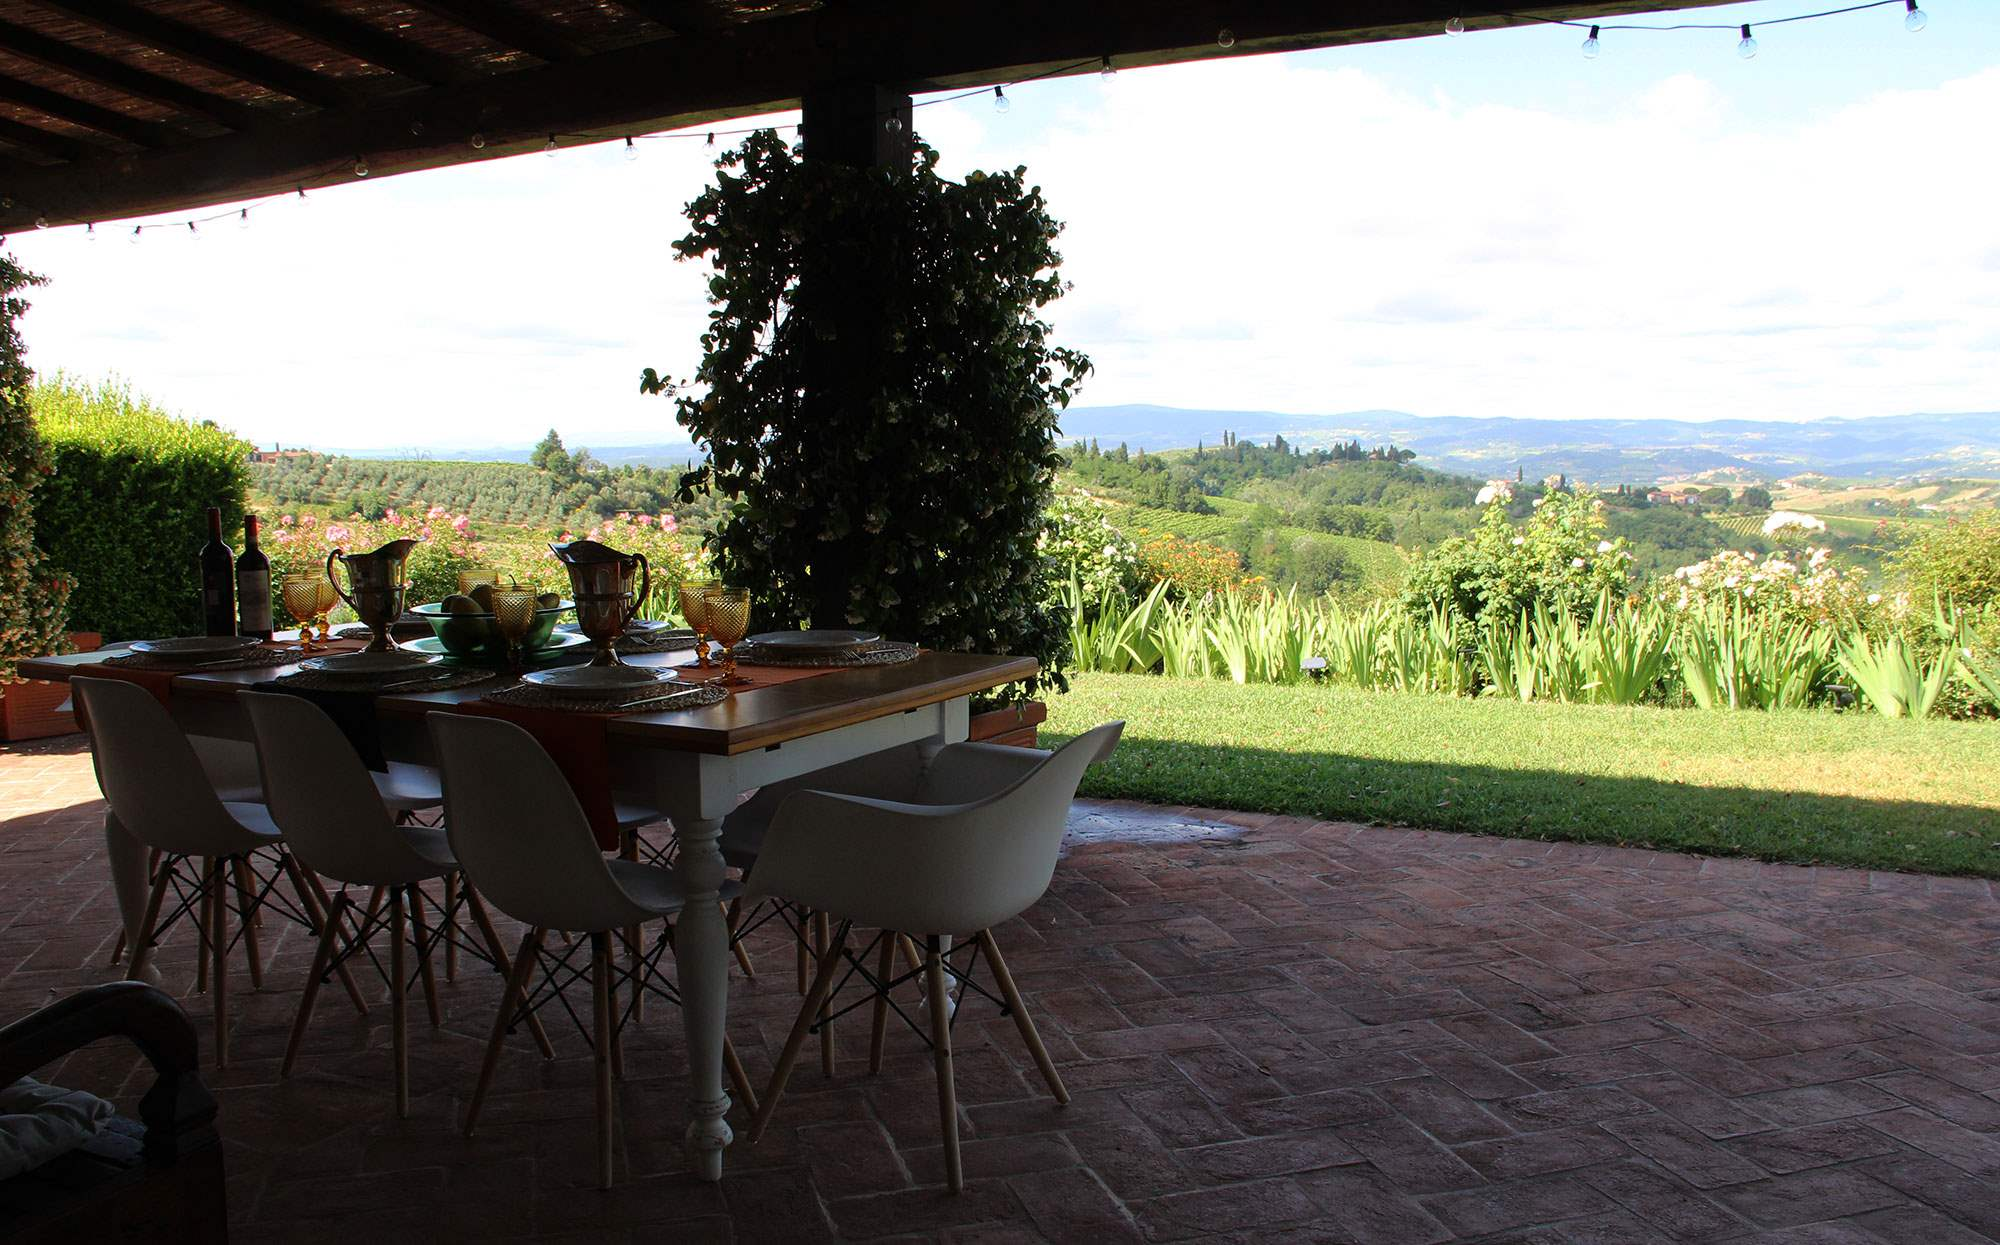 Villa Capanna, 3 bedroom villa in Chianti & Countryside, Tuscany Photo #14